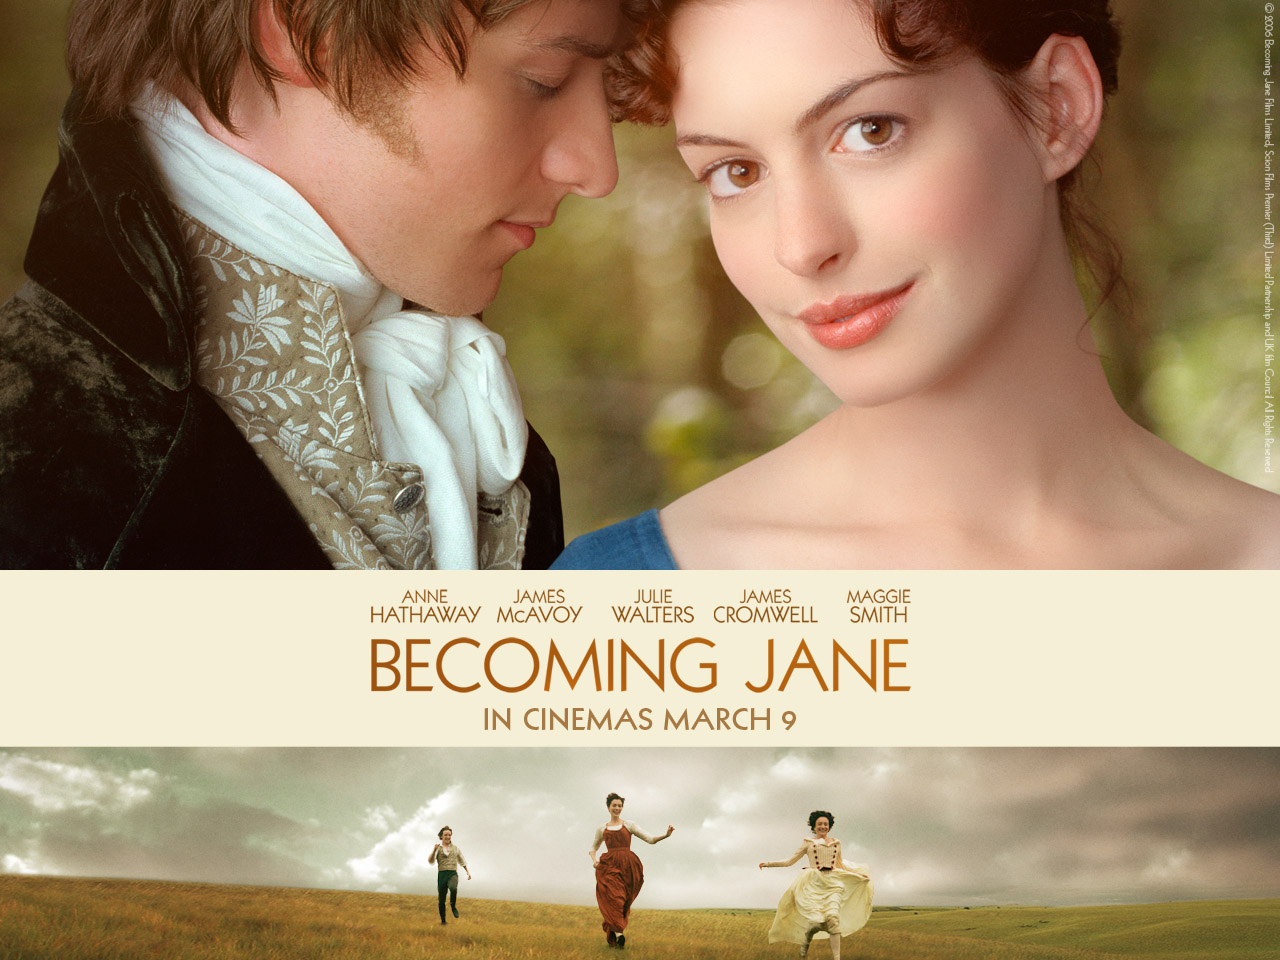 Becoming Jane - Film 2007 - Inghilterra 1795